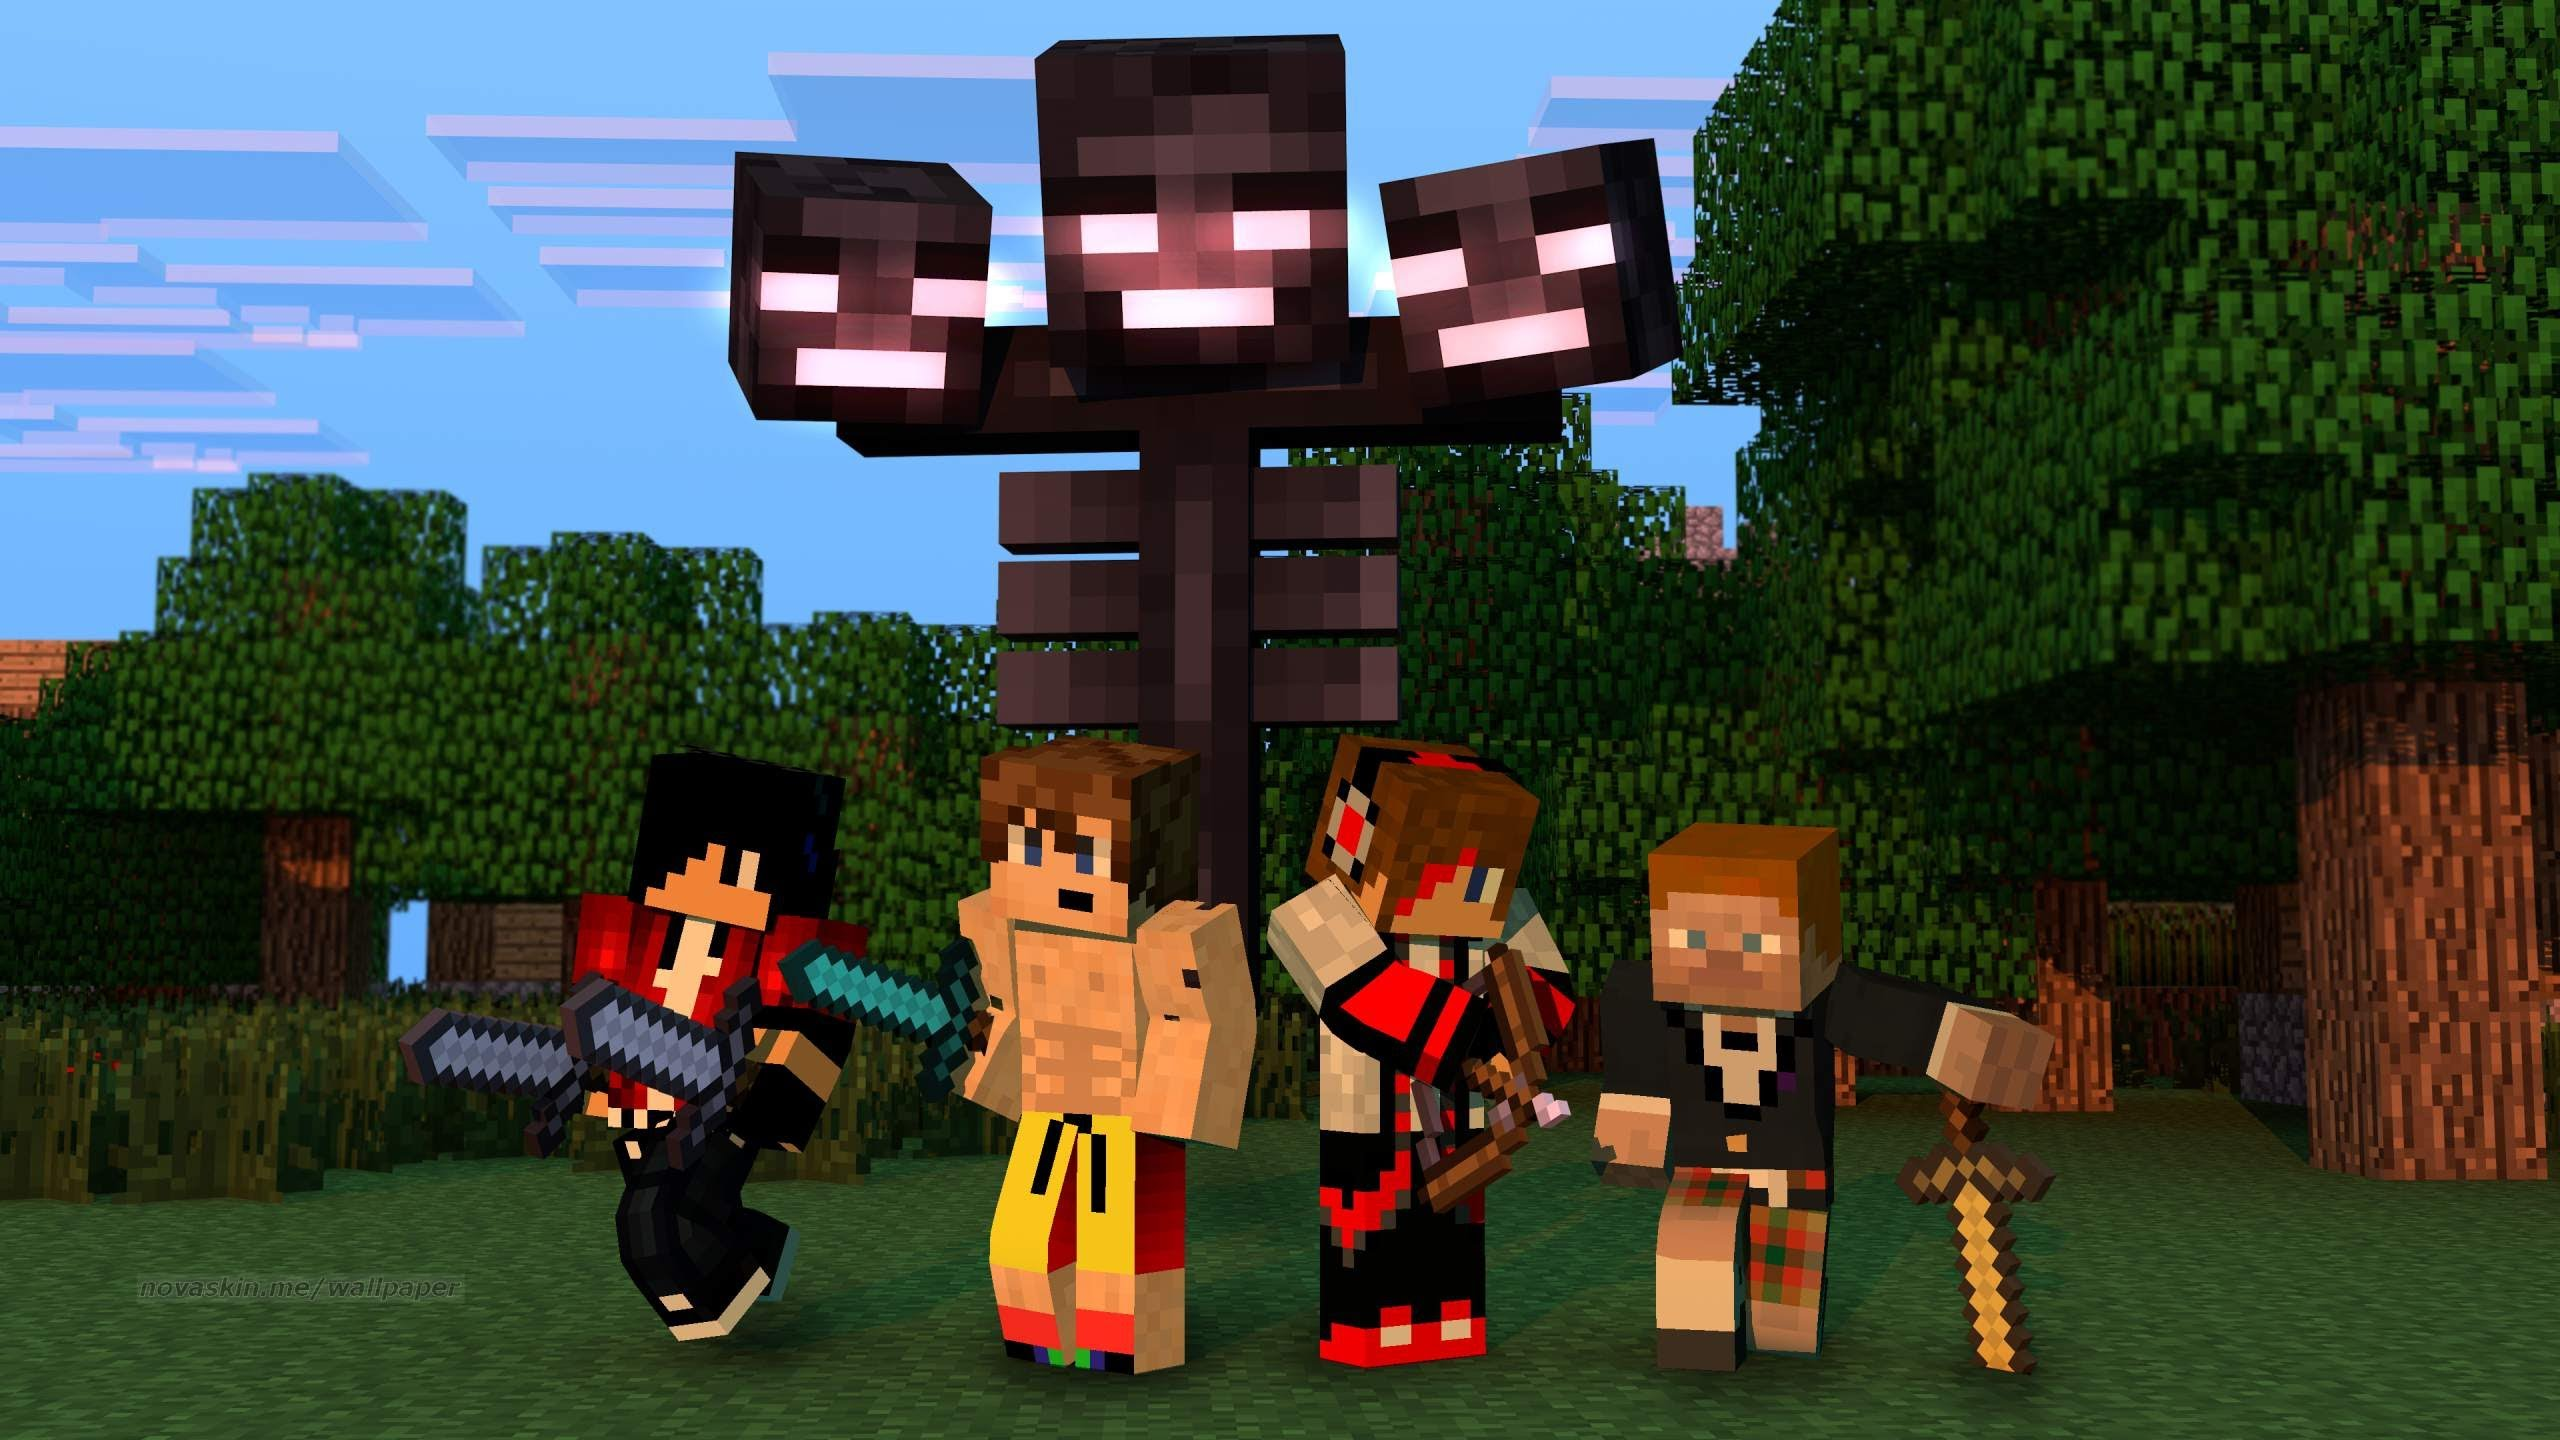 Download Minecraft Animation Wallpaper Gallery